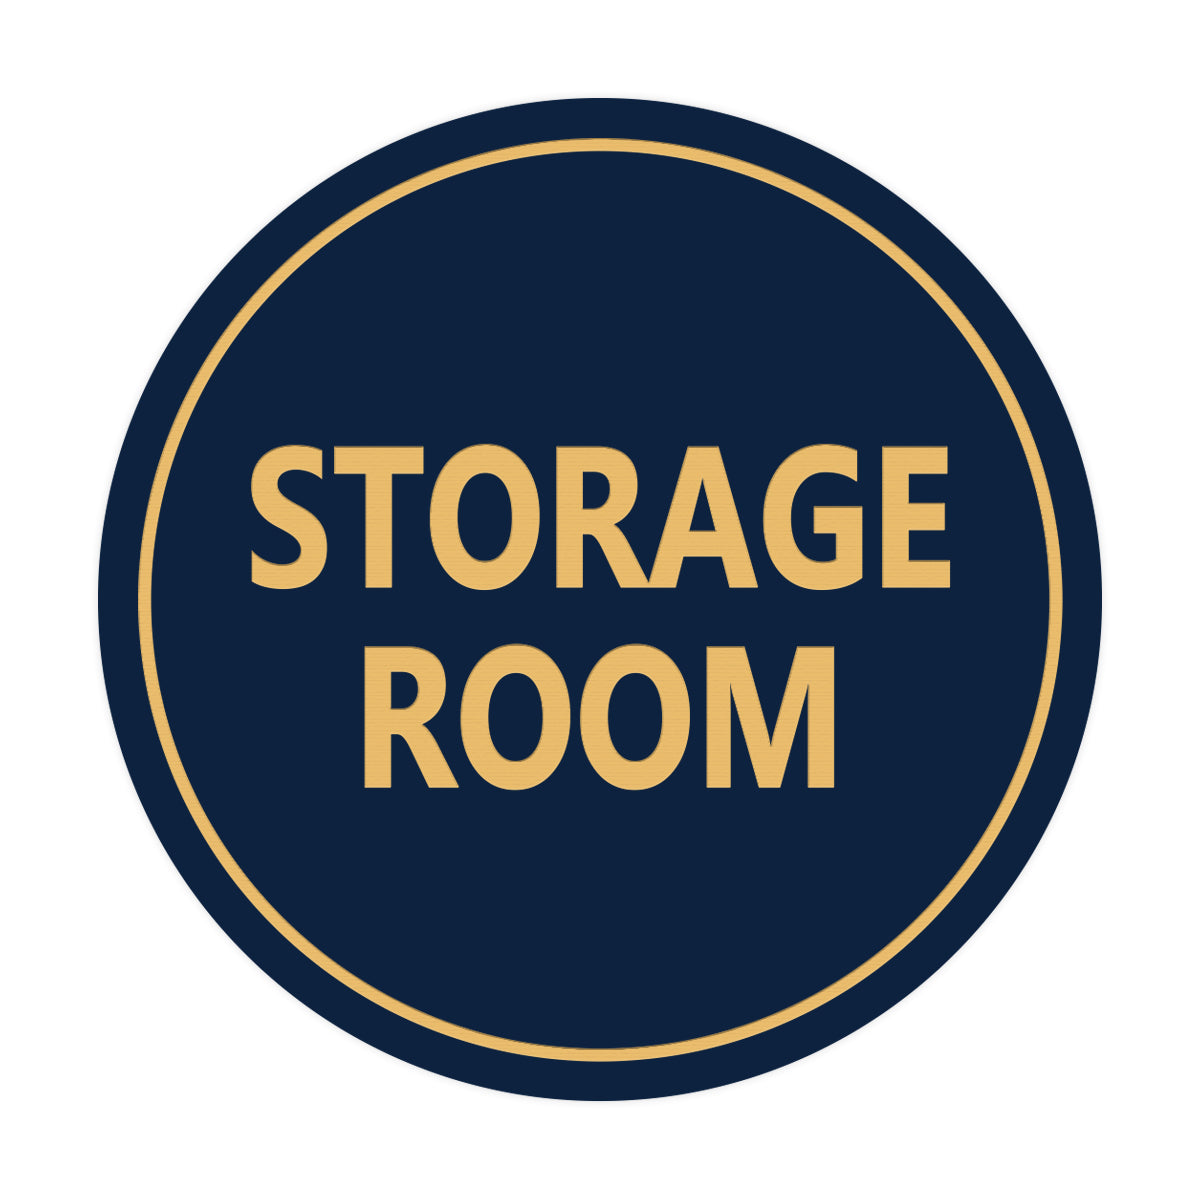 Navy Blue / Gold Signs ByLITA Circle Storage Room Sign